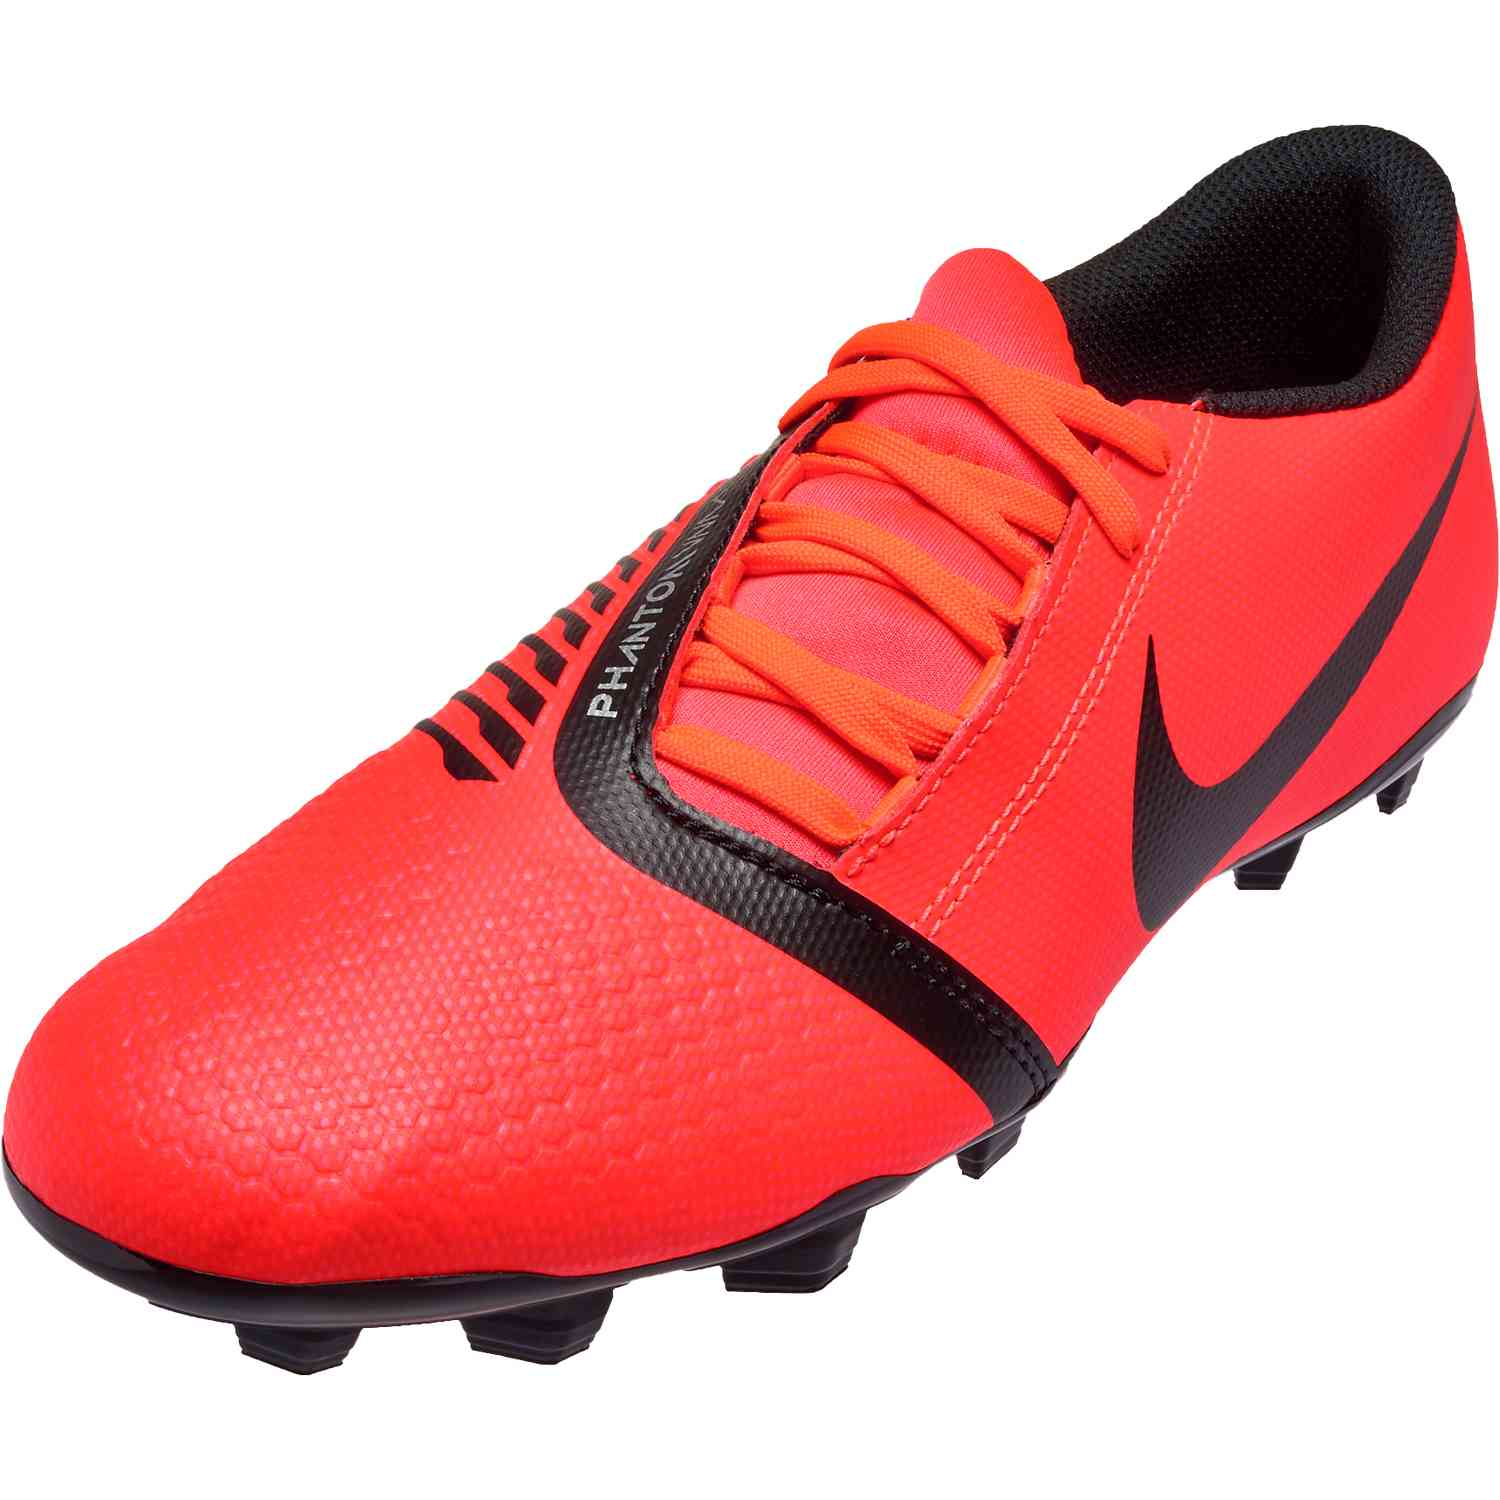 3a5d4dfdb72 Nike Phantom Venom Club FG - Game Over - SoccerPro